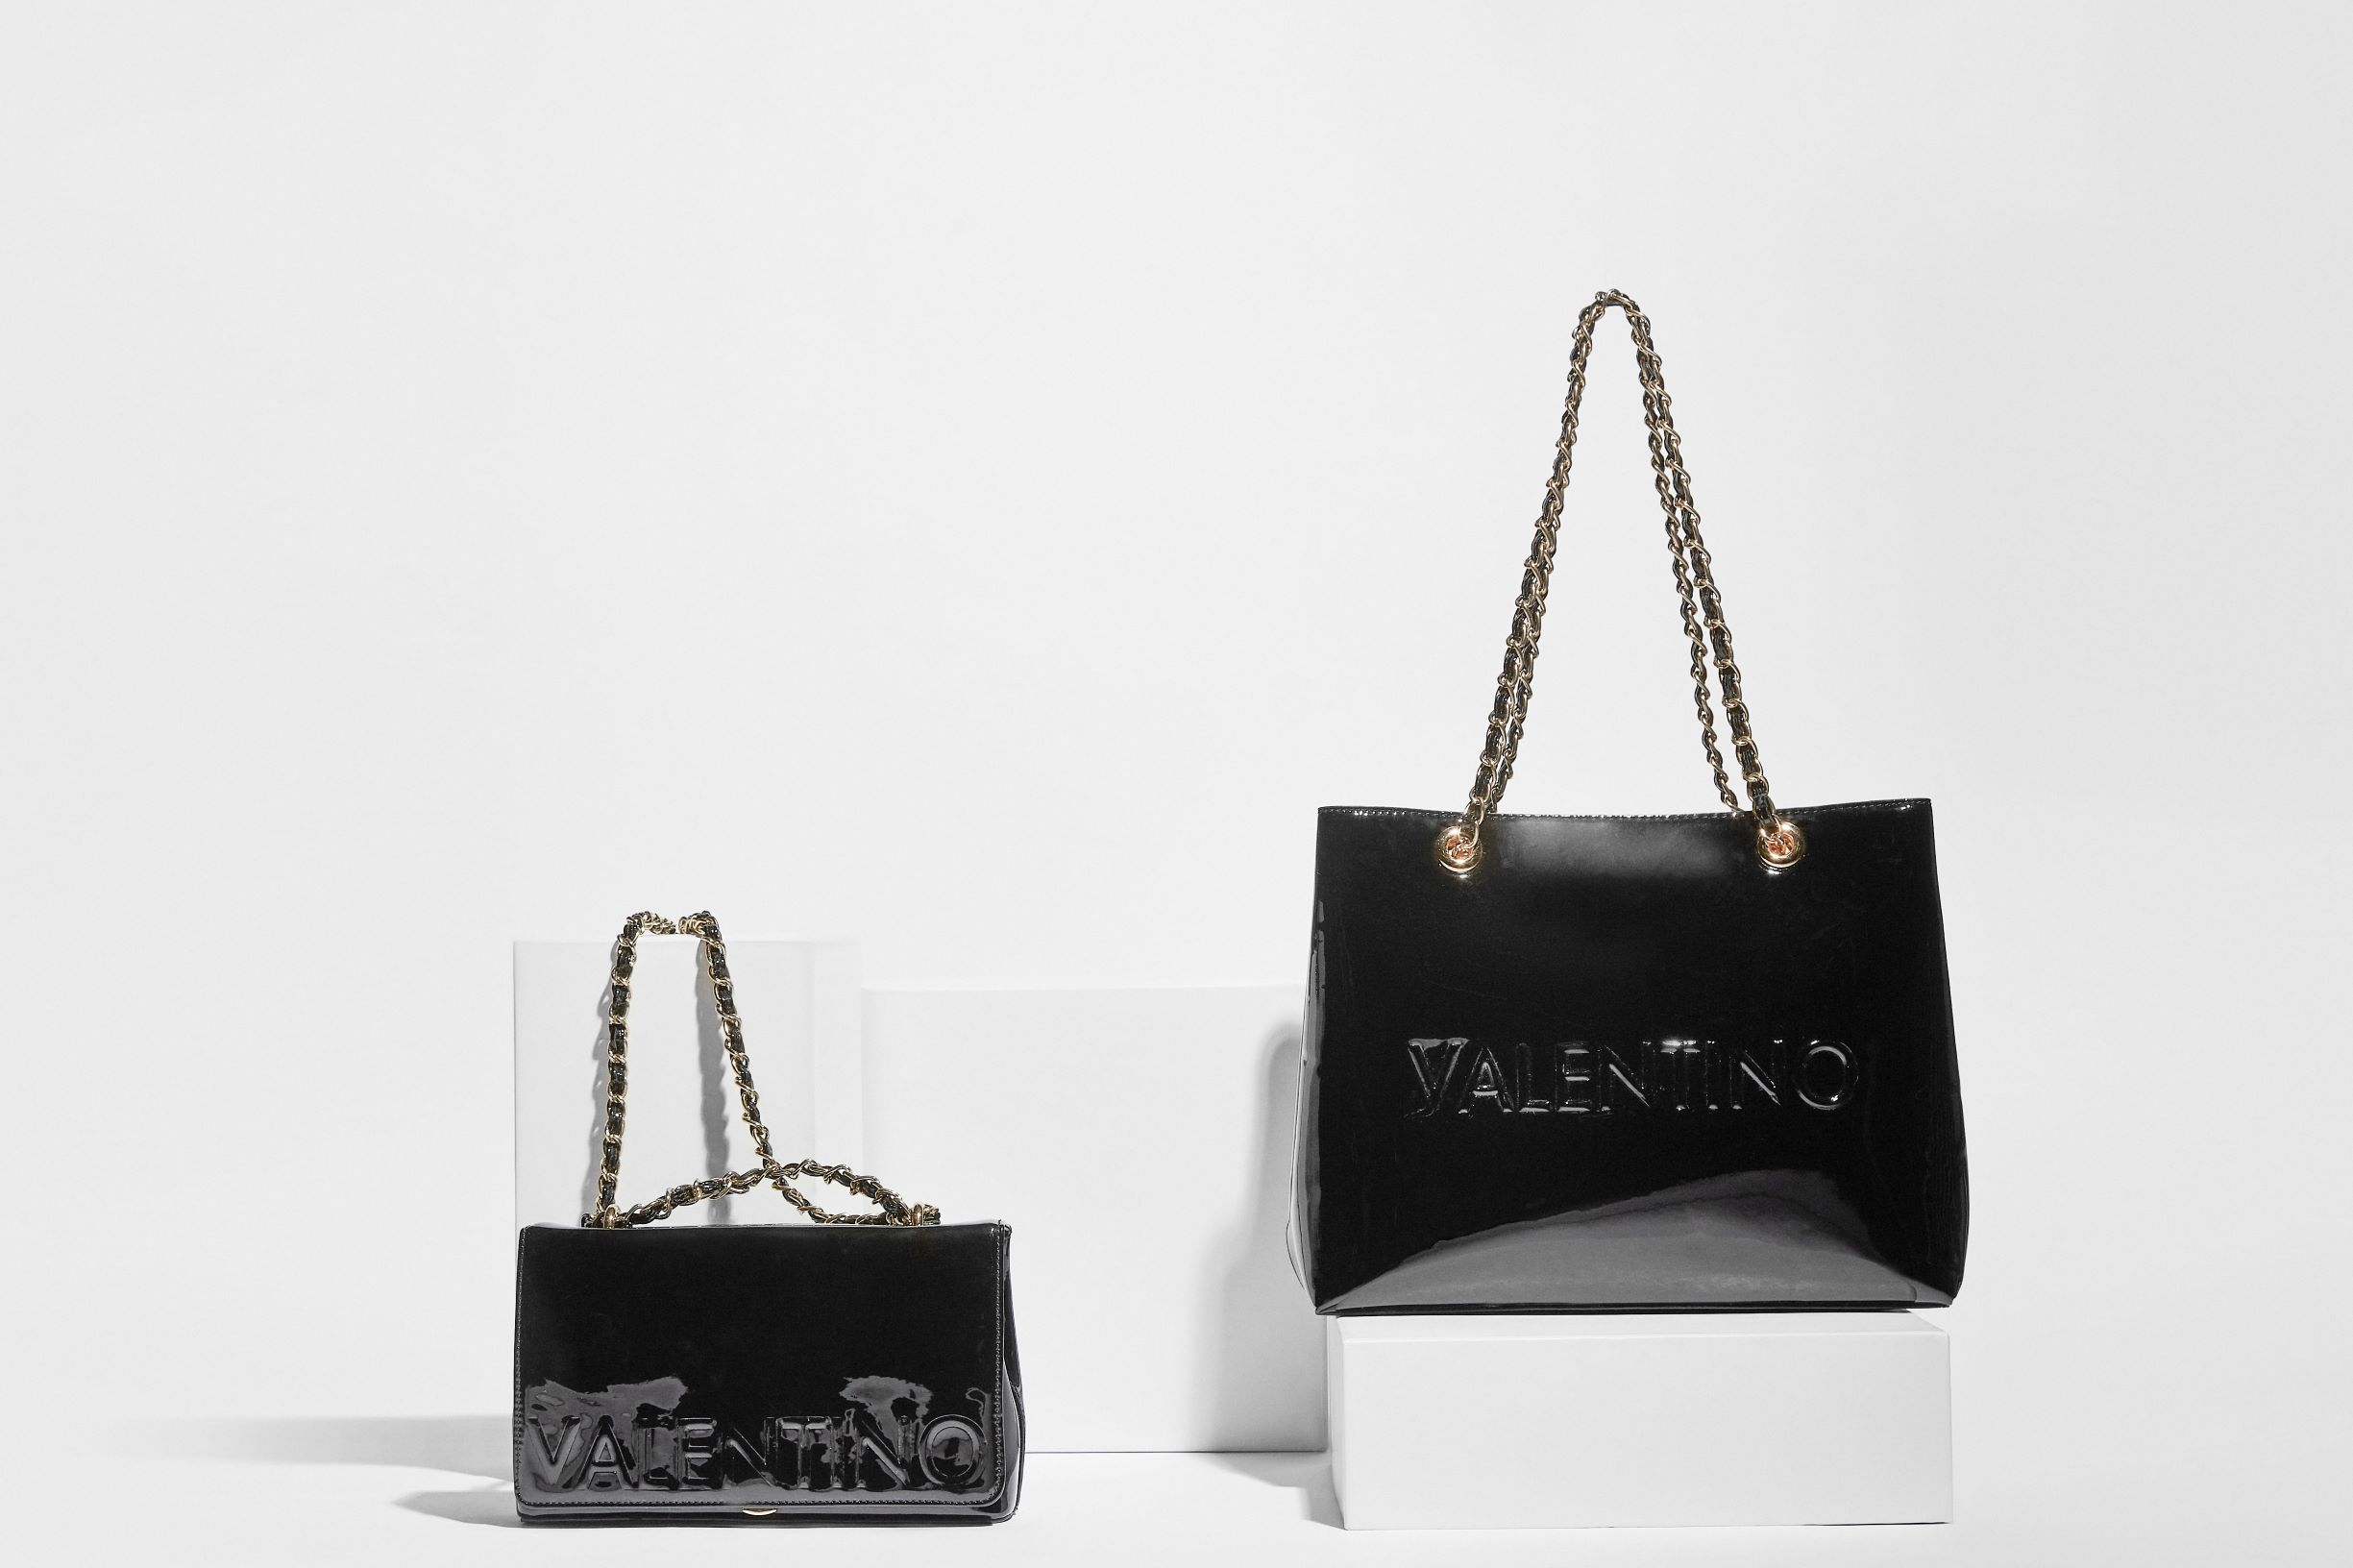 Mario Valentino Black Handbags